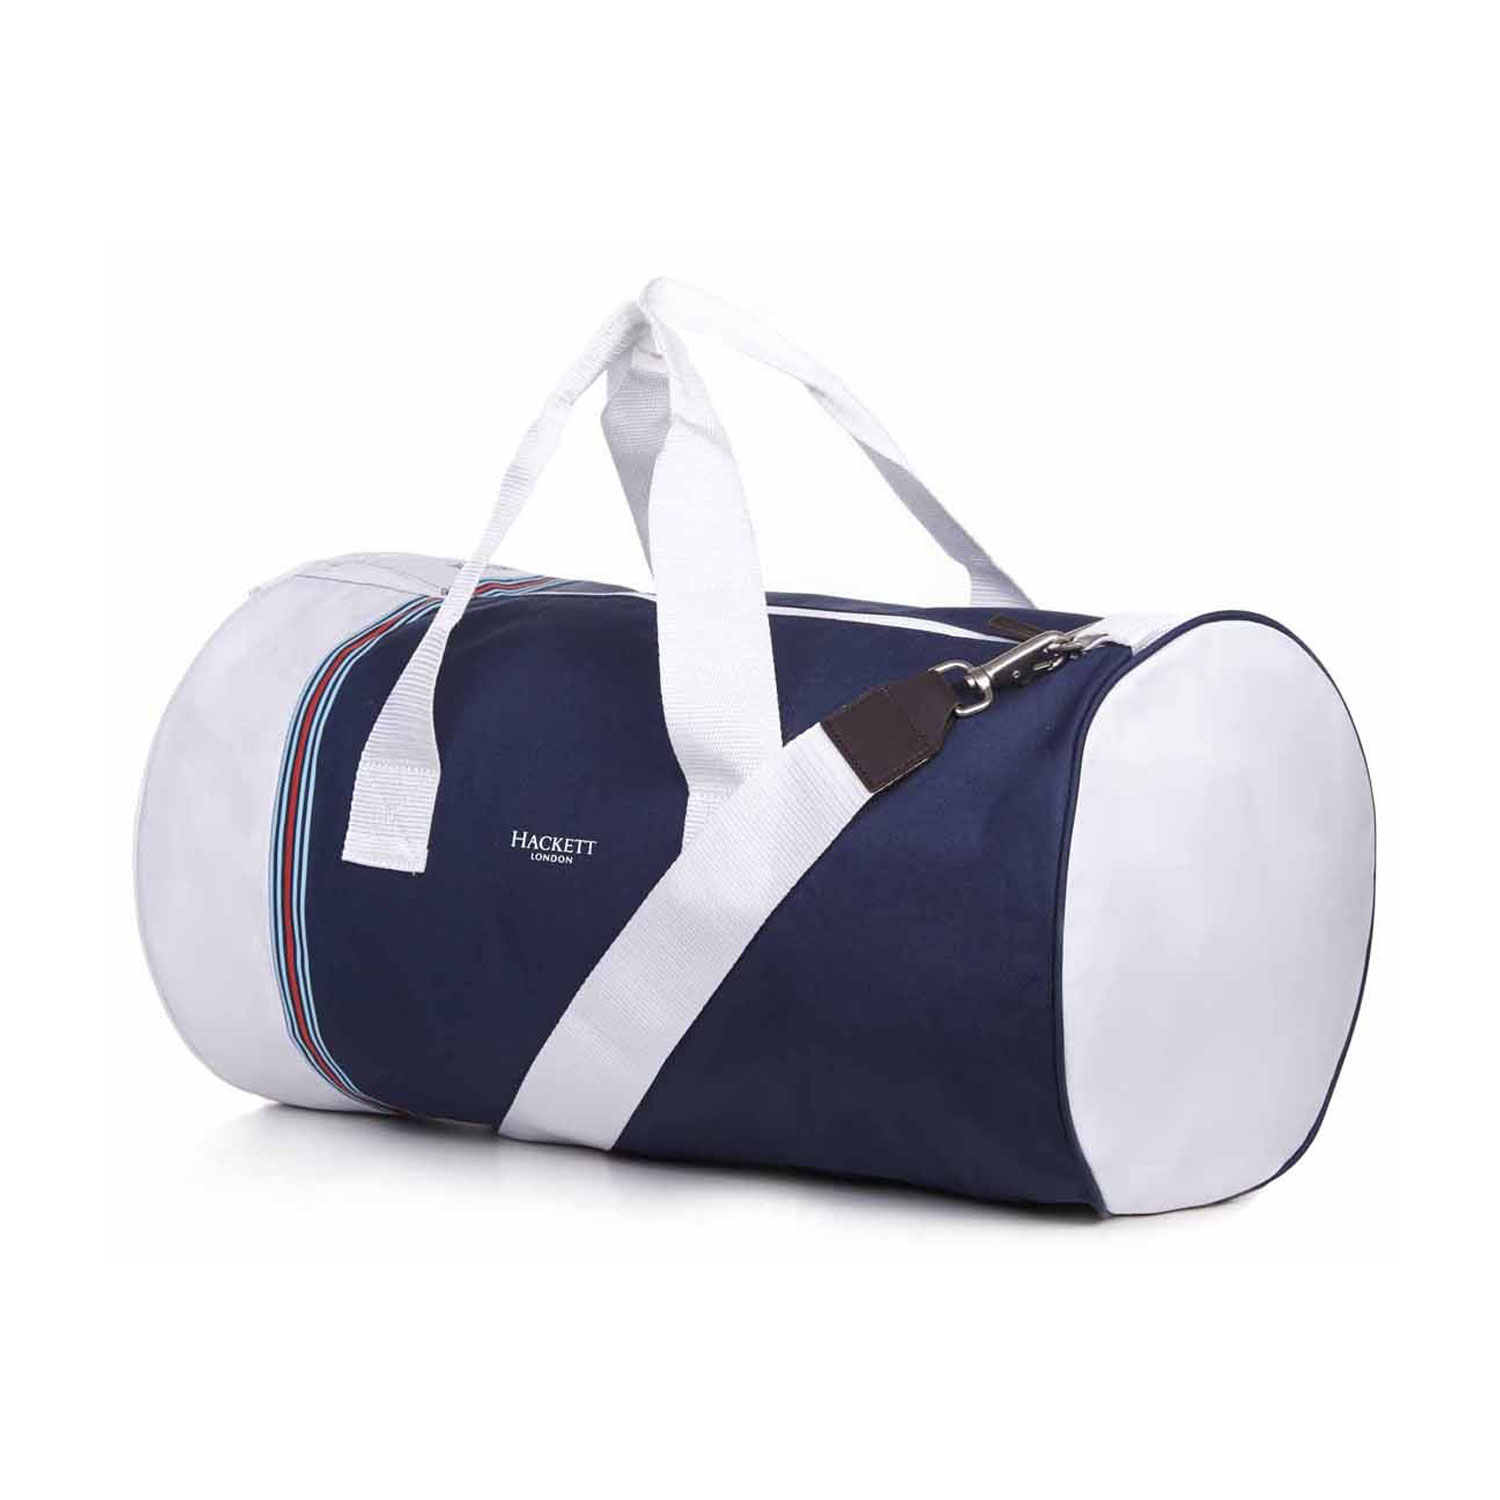 7f6129ed3 Details about Williams Racing Formula 1 Team Sports Duffle Bag size  universal